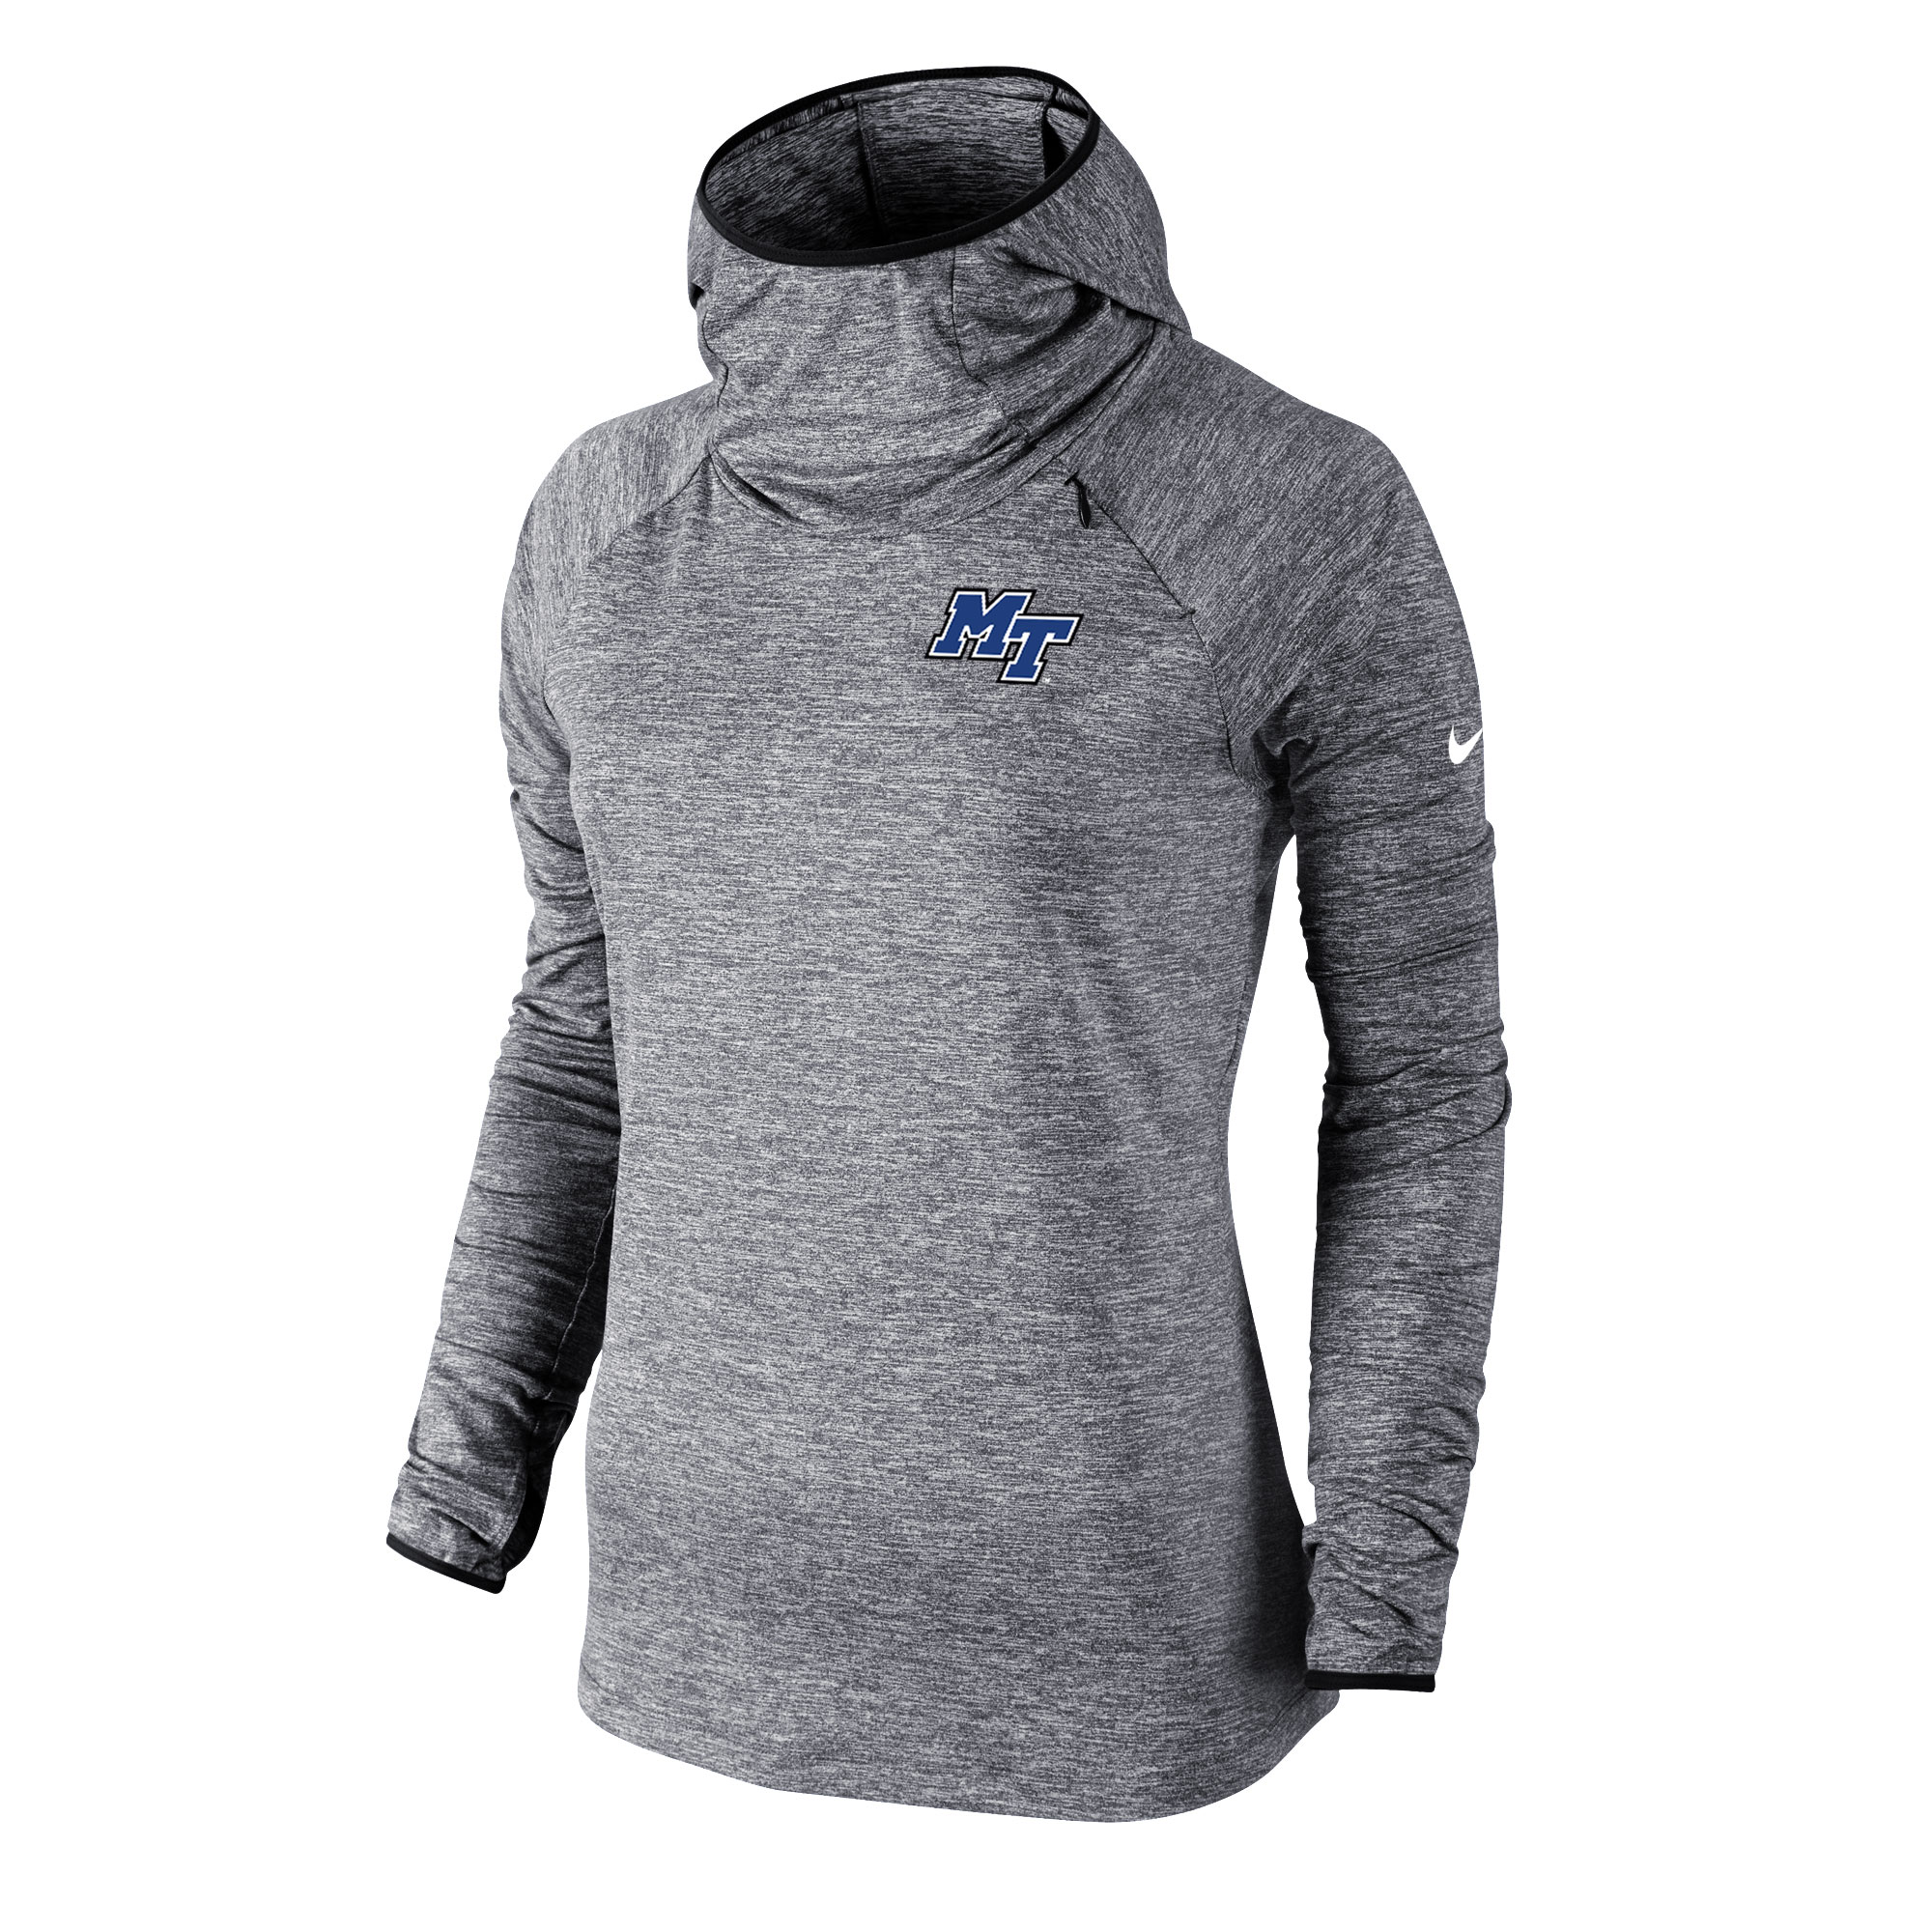 MT Logo Women's Element Hooded Long Sleeve Shirt